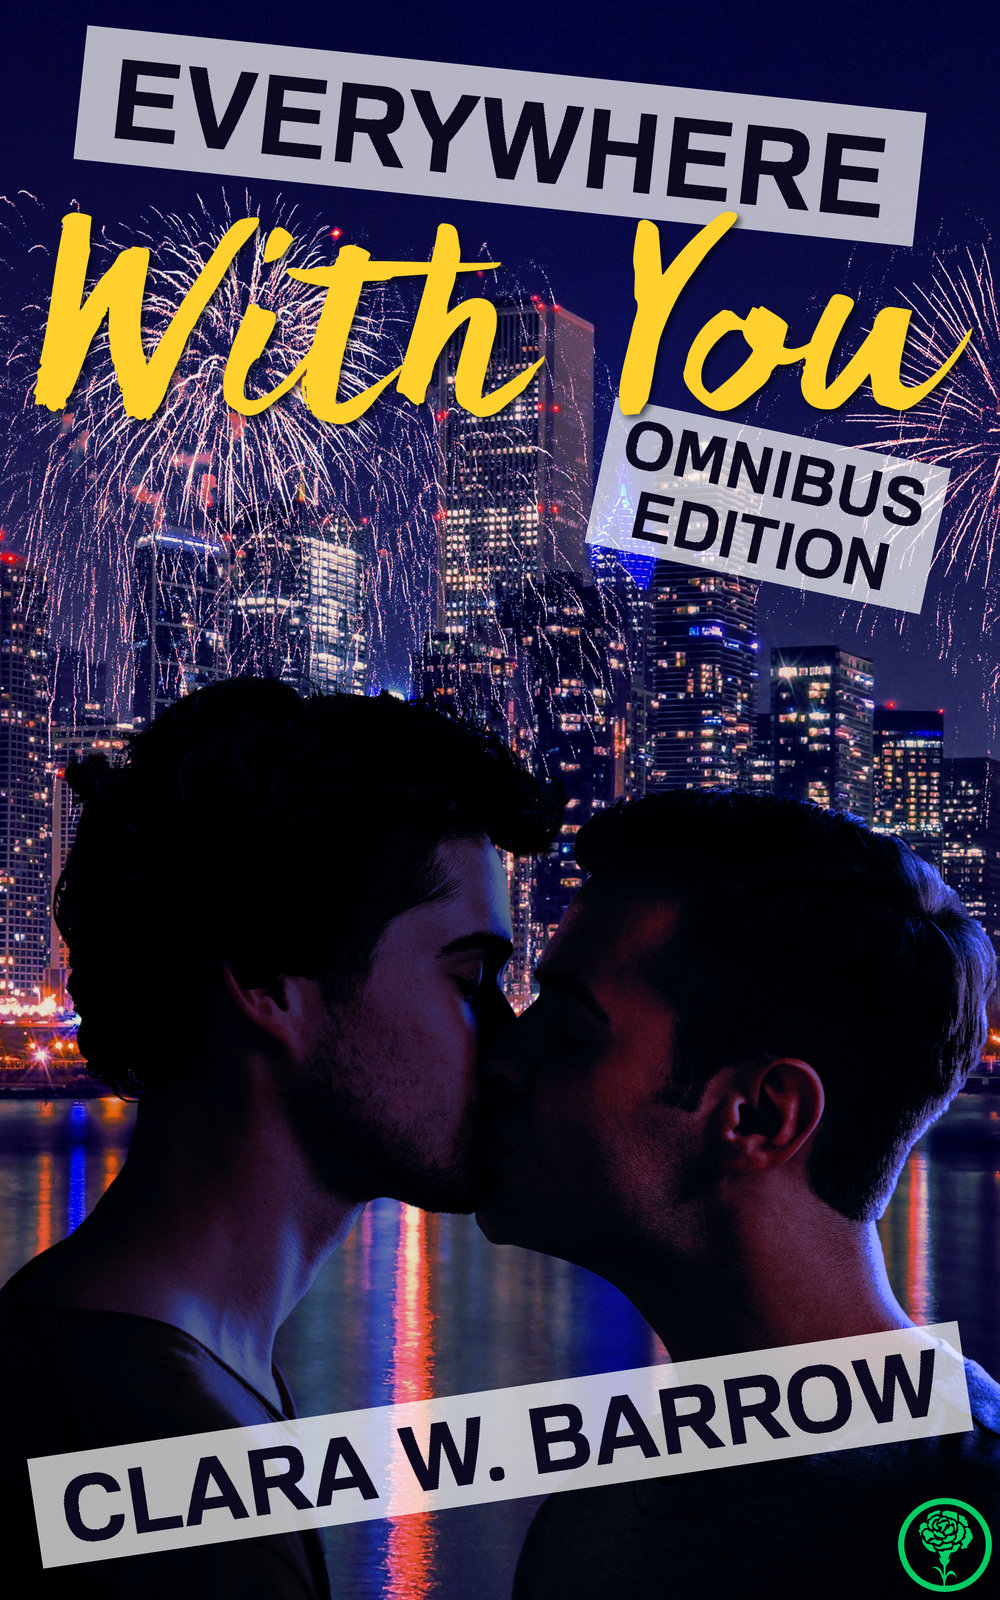 "Two steamy romances, one gorgeous paperback! - This omnibus collects two red-hot gay romance novels together for the first time. Everywhere With You (Omnibus Edition) contains the steamy full text of the friends-to-lovers romance novels Just Like That (Gone and Changed) and Everywhere with You, full of luxurious love scenes and the development of a heartwarming and healthy relationship.Plus, get the Kindle book for free when you buy the paperback version! What happens when you fall in love with your best friend?Introspective, sensitive Sam and loyal, kind-hearted Will are best friends who grew up together on neighboring farms. They've shared everything — until Sam leaves for college and shuts Will out of his life. Determined not to lose his best friend, Will confronts Sam at their favorite swimming hole and forces the situation to a passionate confrontation. That hot and steamy summer changes their lives forever.After an agonizing fall semester spent a thousand miles apart, they finally make it home for the holidays, but spending Christmas with their small-town families brings an unexpected set of challenges.An escape to nearby Chicago proves to be the perfect way to spend their first New Year's Eve together. As they grow their relationship against the backdrop of the Windy City's vibrant gay community and fall deeper in love, new experiences and new choices give them the most memorable experiences of their life together so far.But will the biggest obstacle in the way of their happiness be Sam himself?Experience the story of a lifelong friendship that transforms into a love unlike any other. Read the pair of erotic romance novels that reviewers are calling ""captivating,"" ""uplifting,"" ""tender,"" ""sexy,"" ""gorgeous,"" and ""a romantic coming-of-age tale that will sweep you away,"" and experience what it's like to fall in love for the very first time."